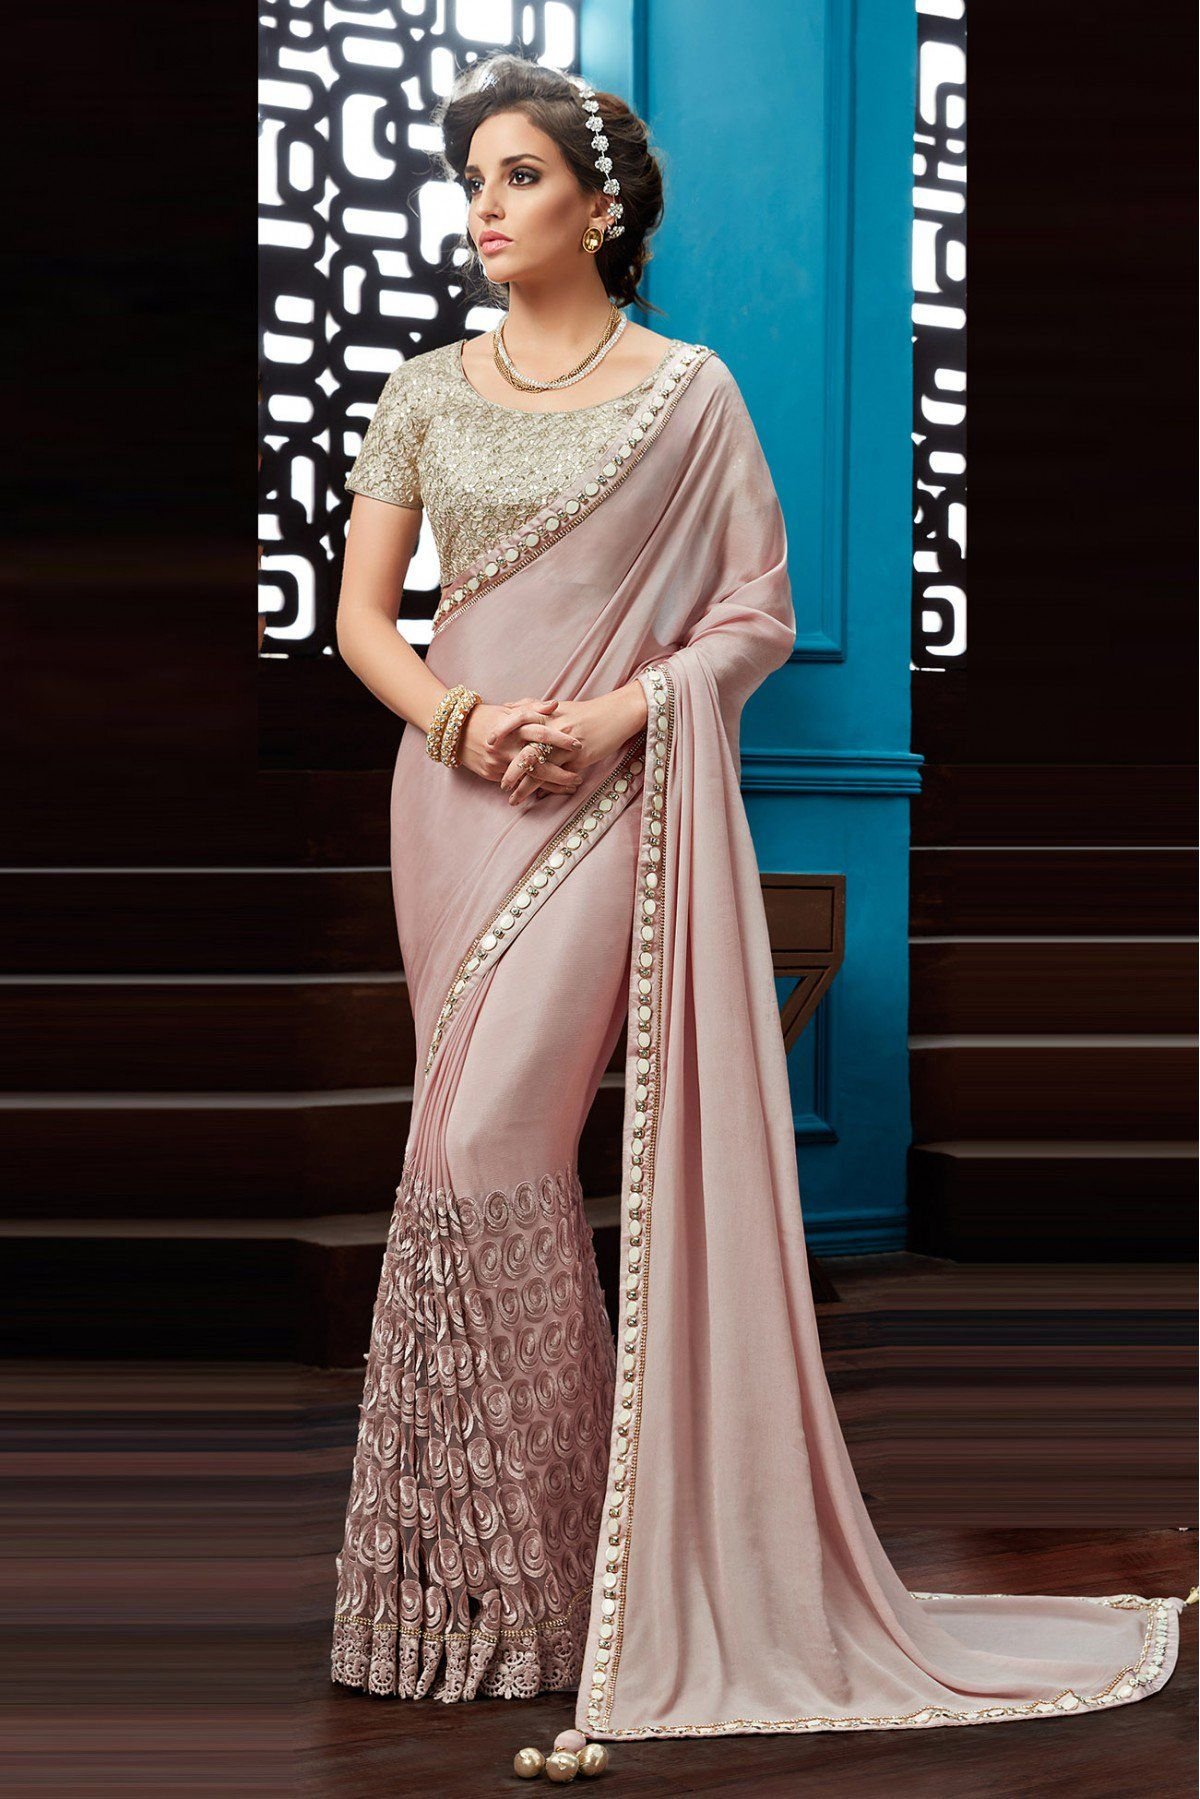 777736b61d Buy Chiffon Party Wear Saree In Pink Colour for women @ ninecolours.com.  Worldwide Free Shipping Available!